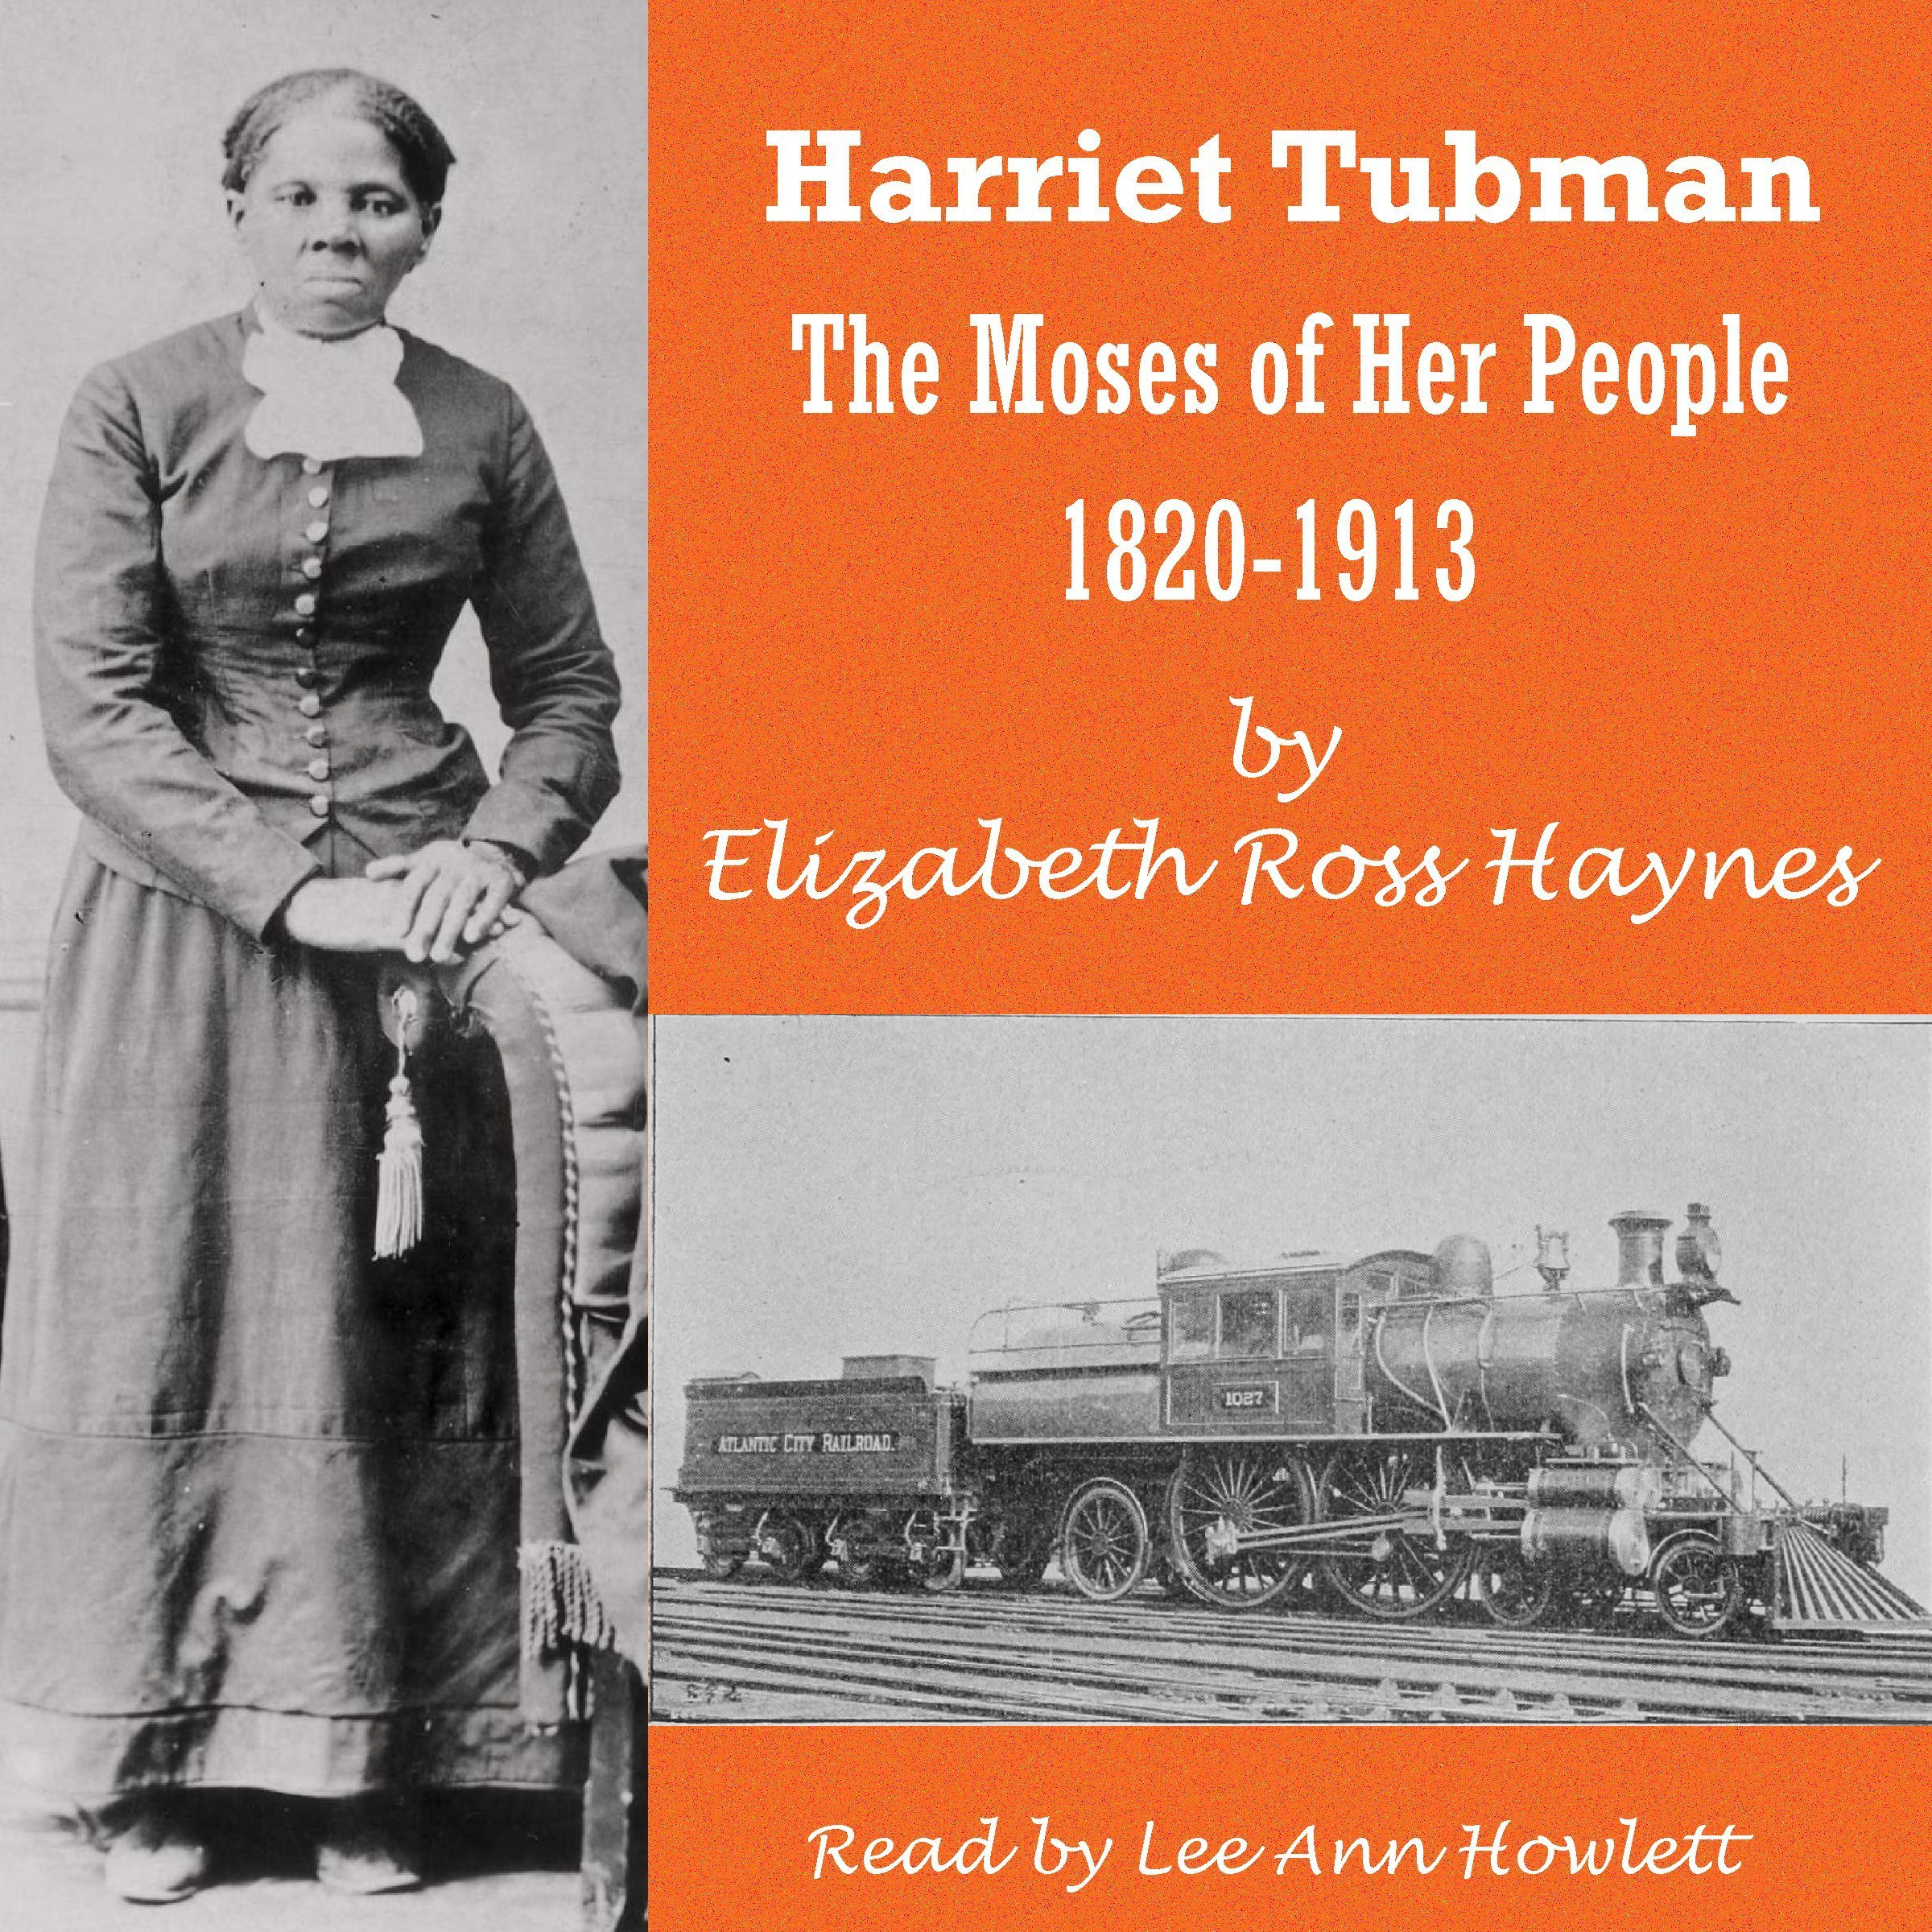 Book Report About Harriet Tubman